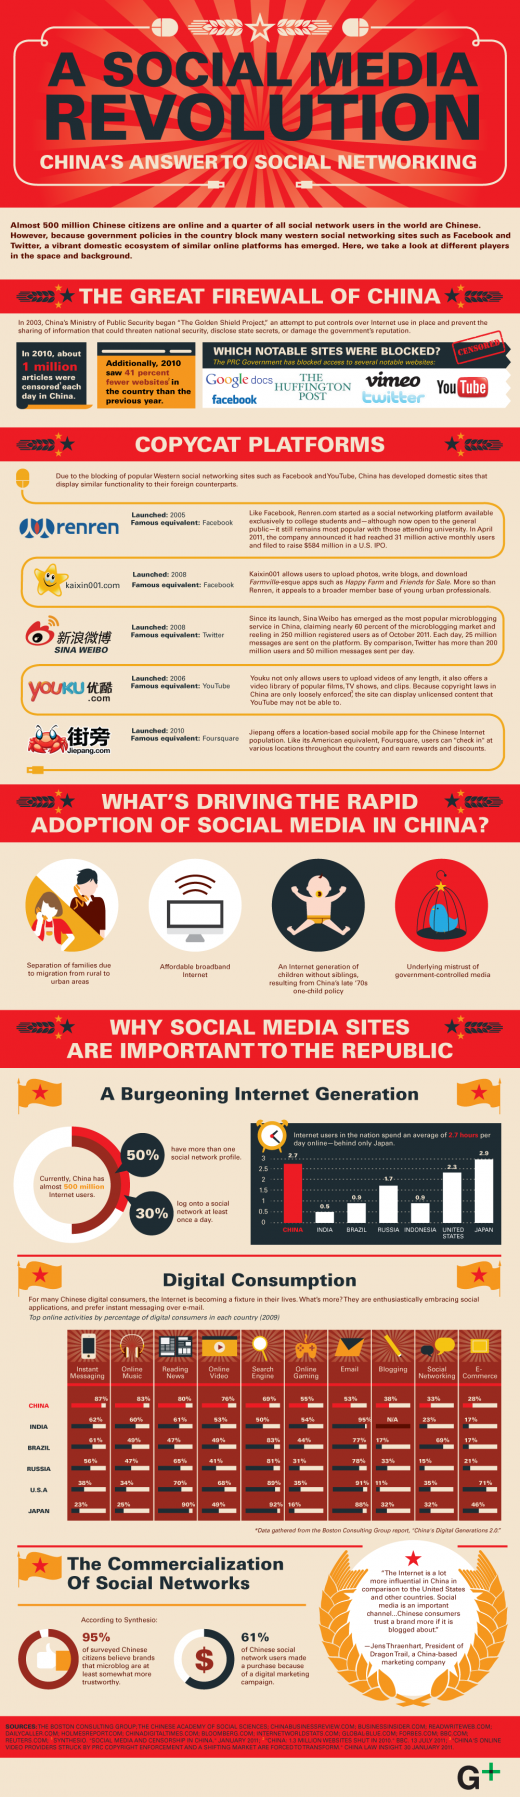 SocialMediaRevolution L 3073 520x1797 Chinas Social Media Revolution [Infographic]